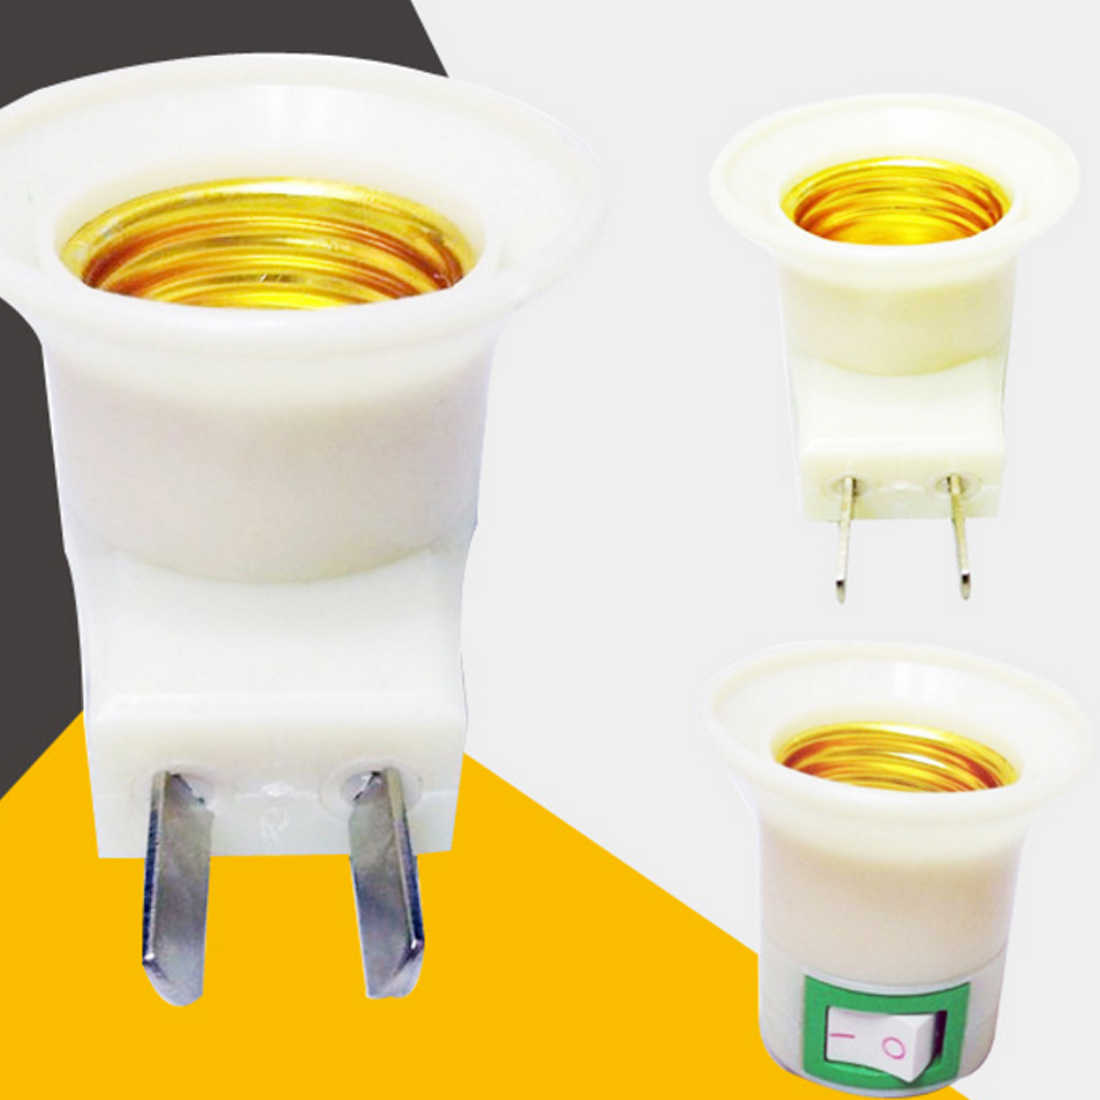 High-quality Floor price 1 PC E27 Female Socket to EU Plug and US Plug Adapter With Power on-off Control Switch High Quality